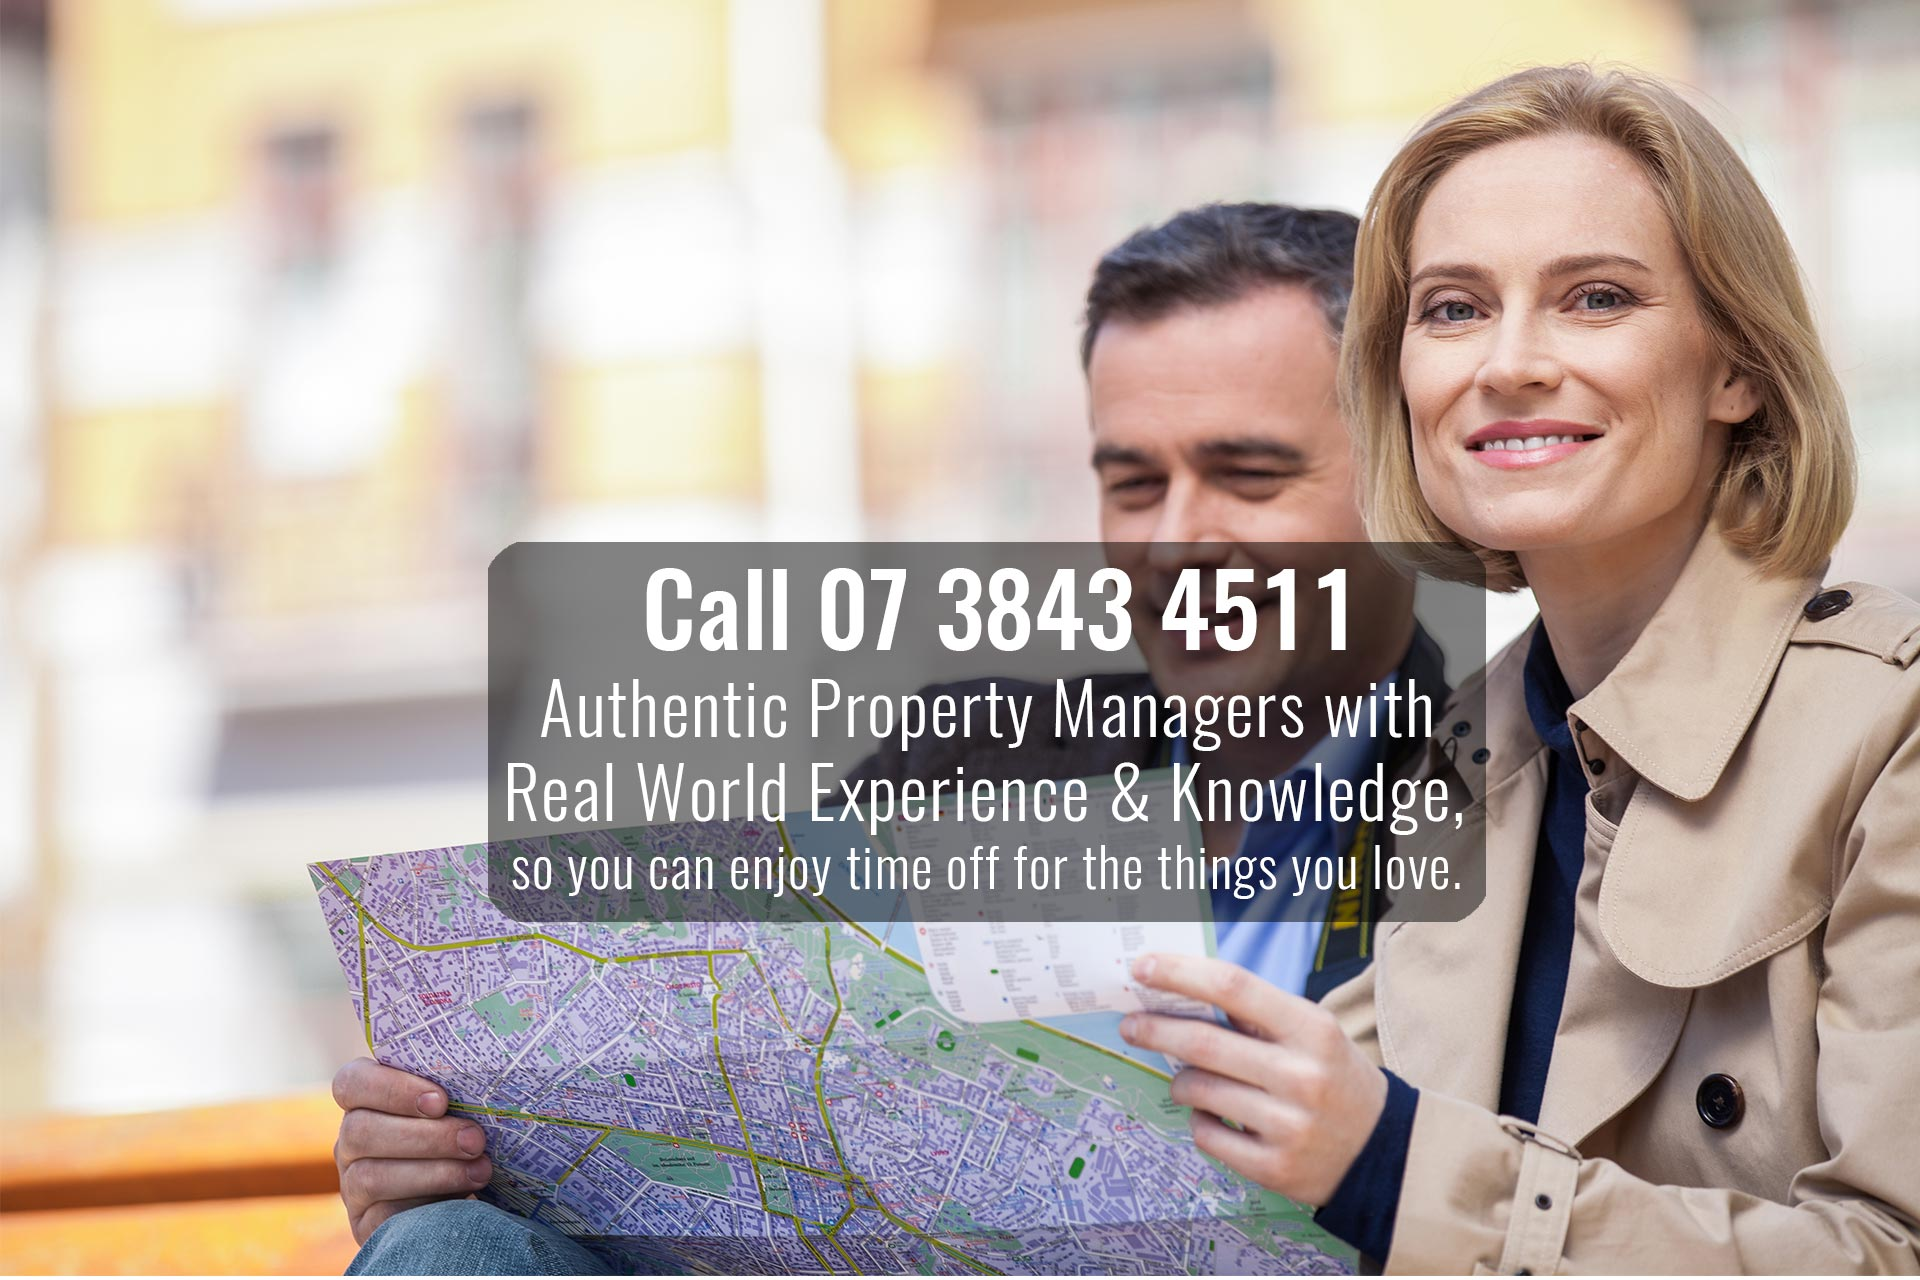 Authentic Property Managers with Real World Experience & Knowledge